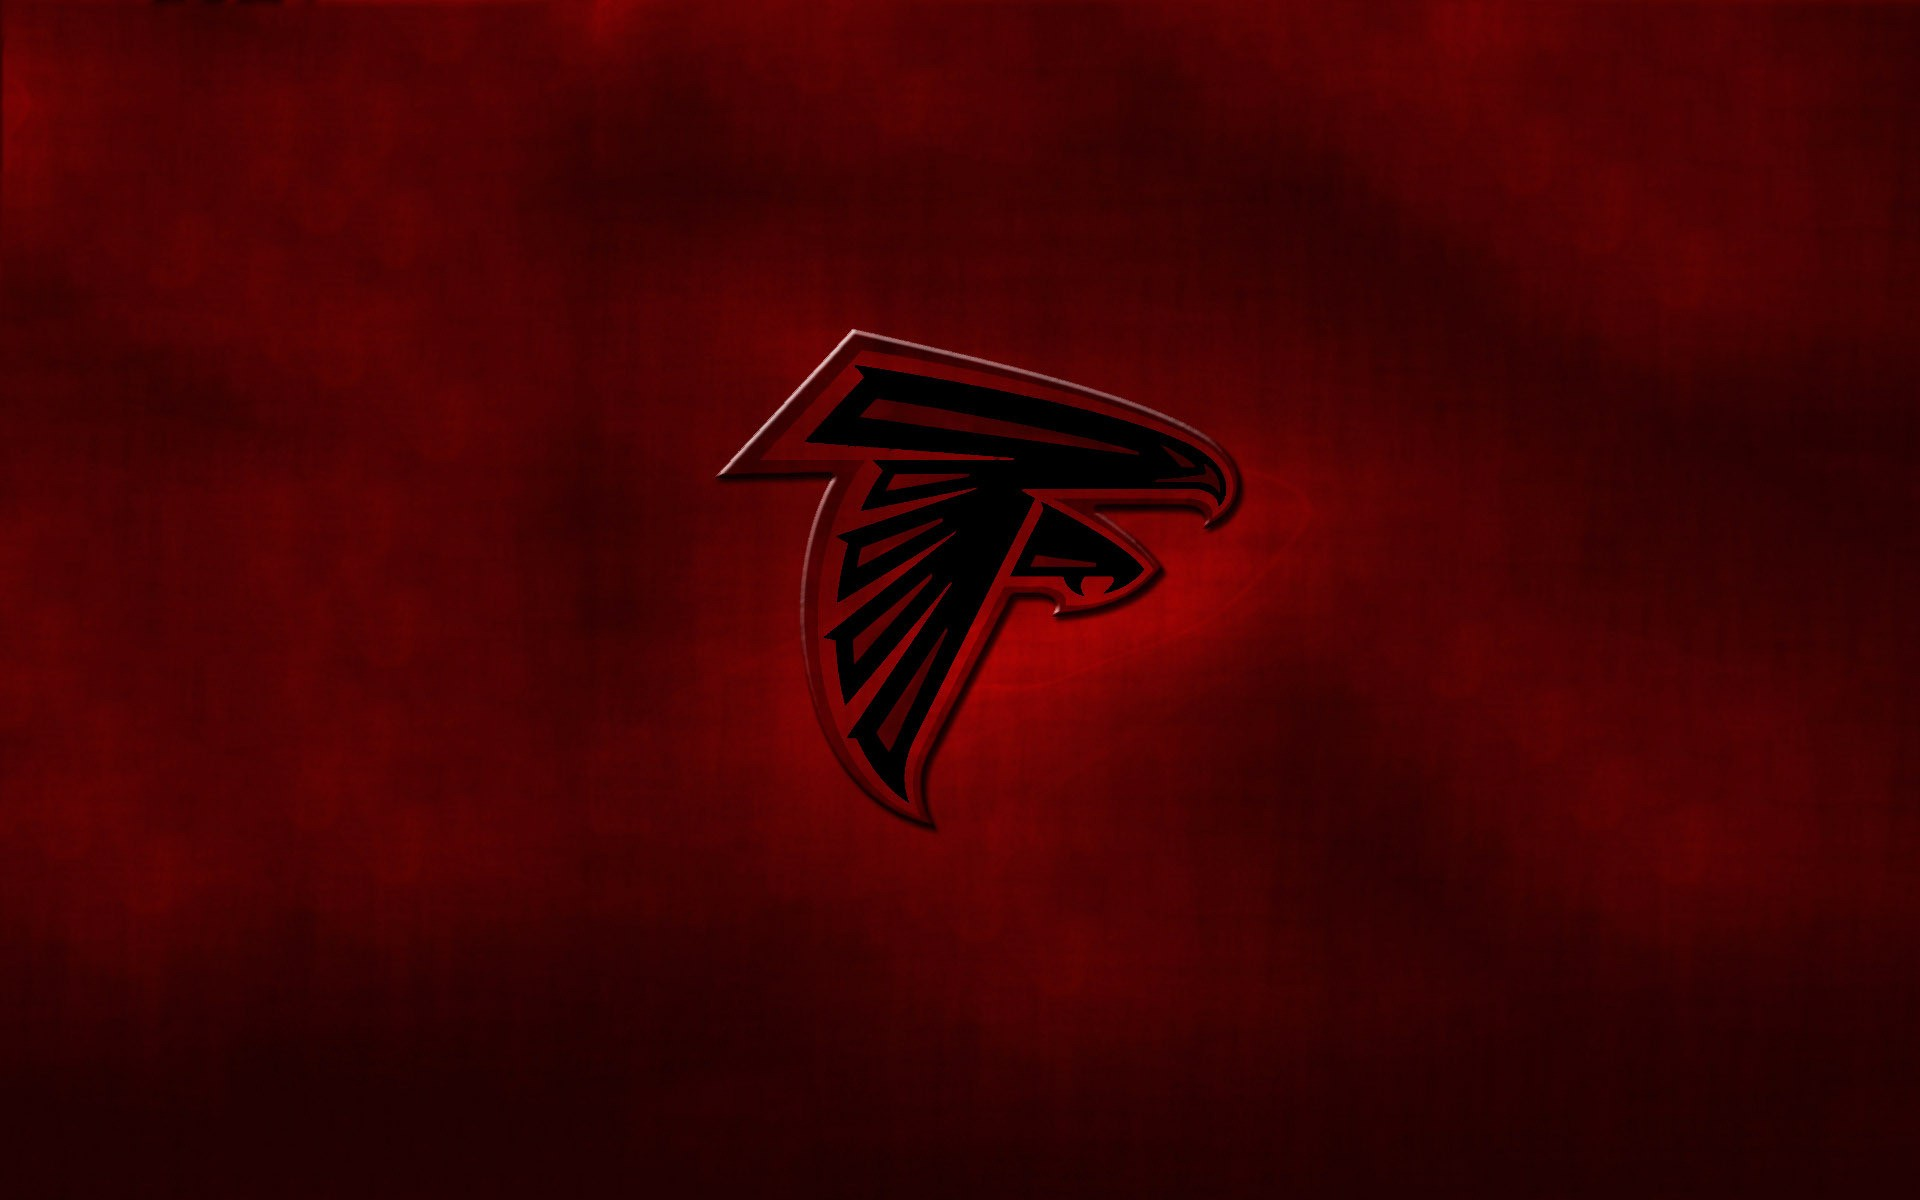 Falcons Wallpaper: Atlanta Falcons Wallpaper Desktop